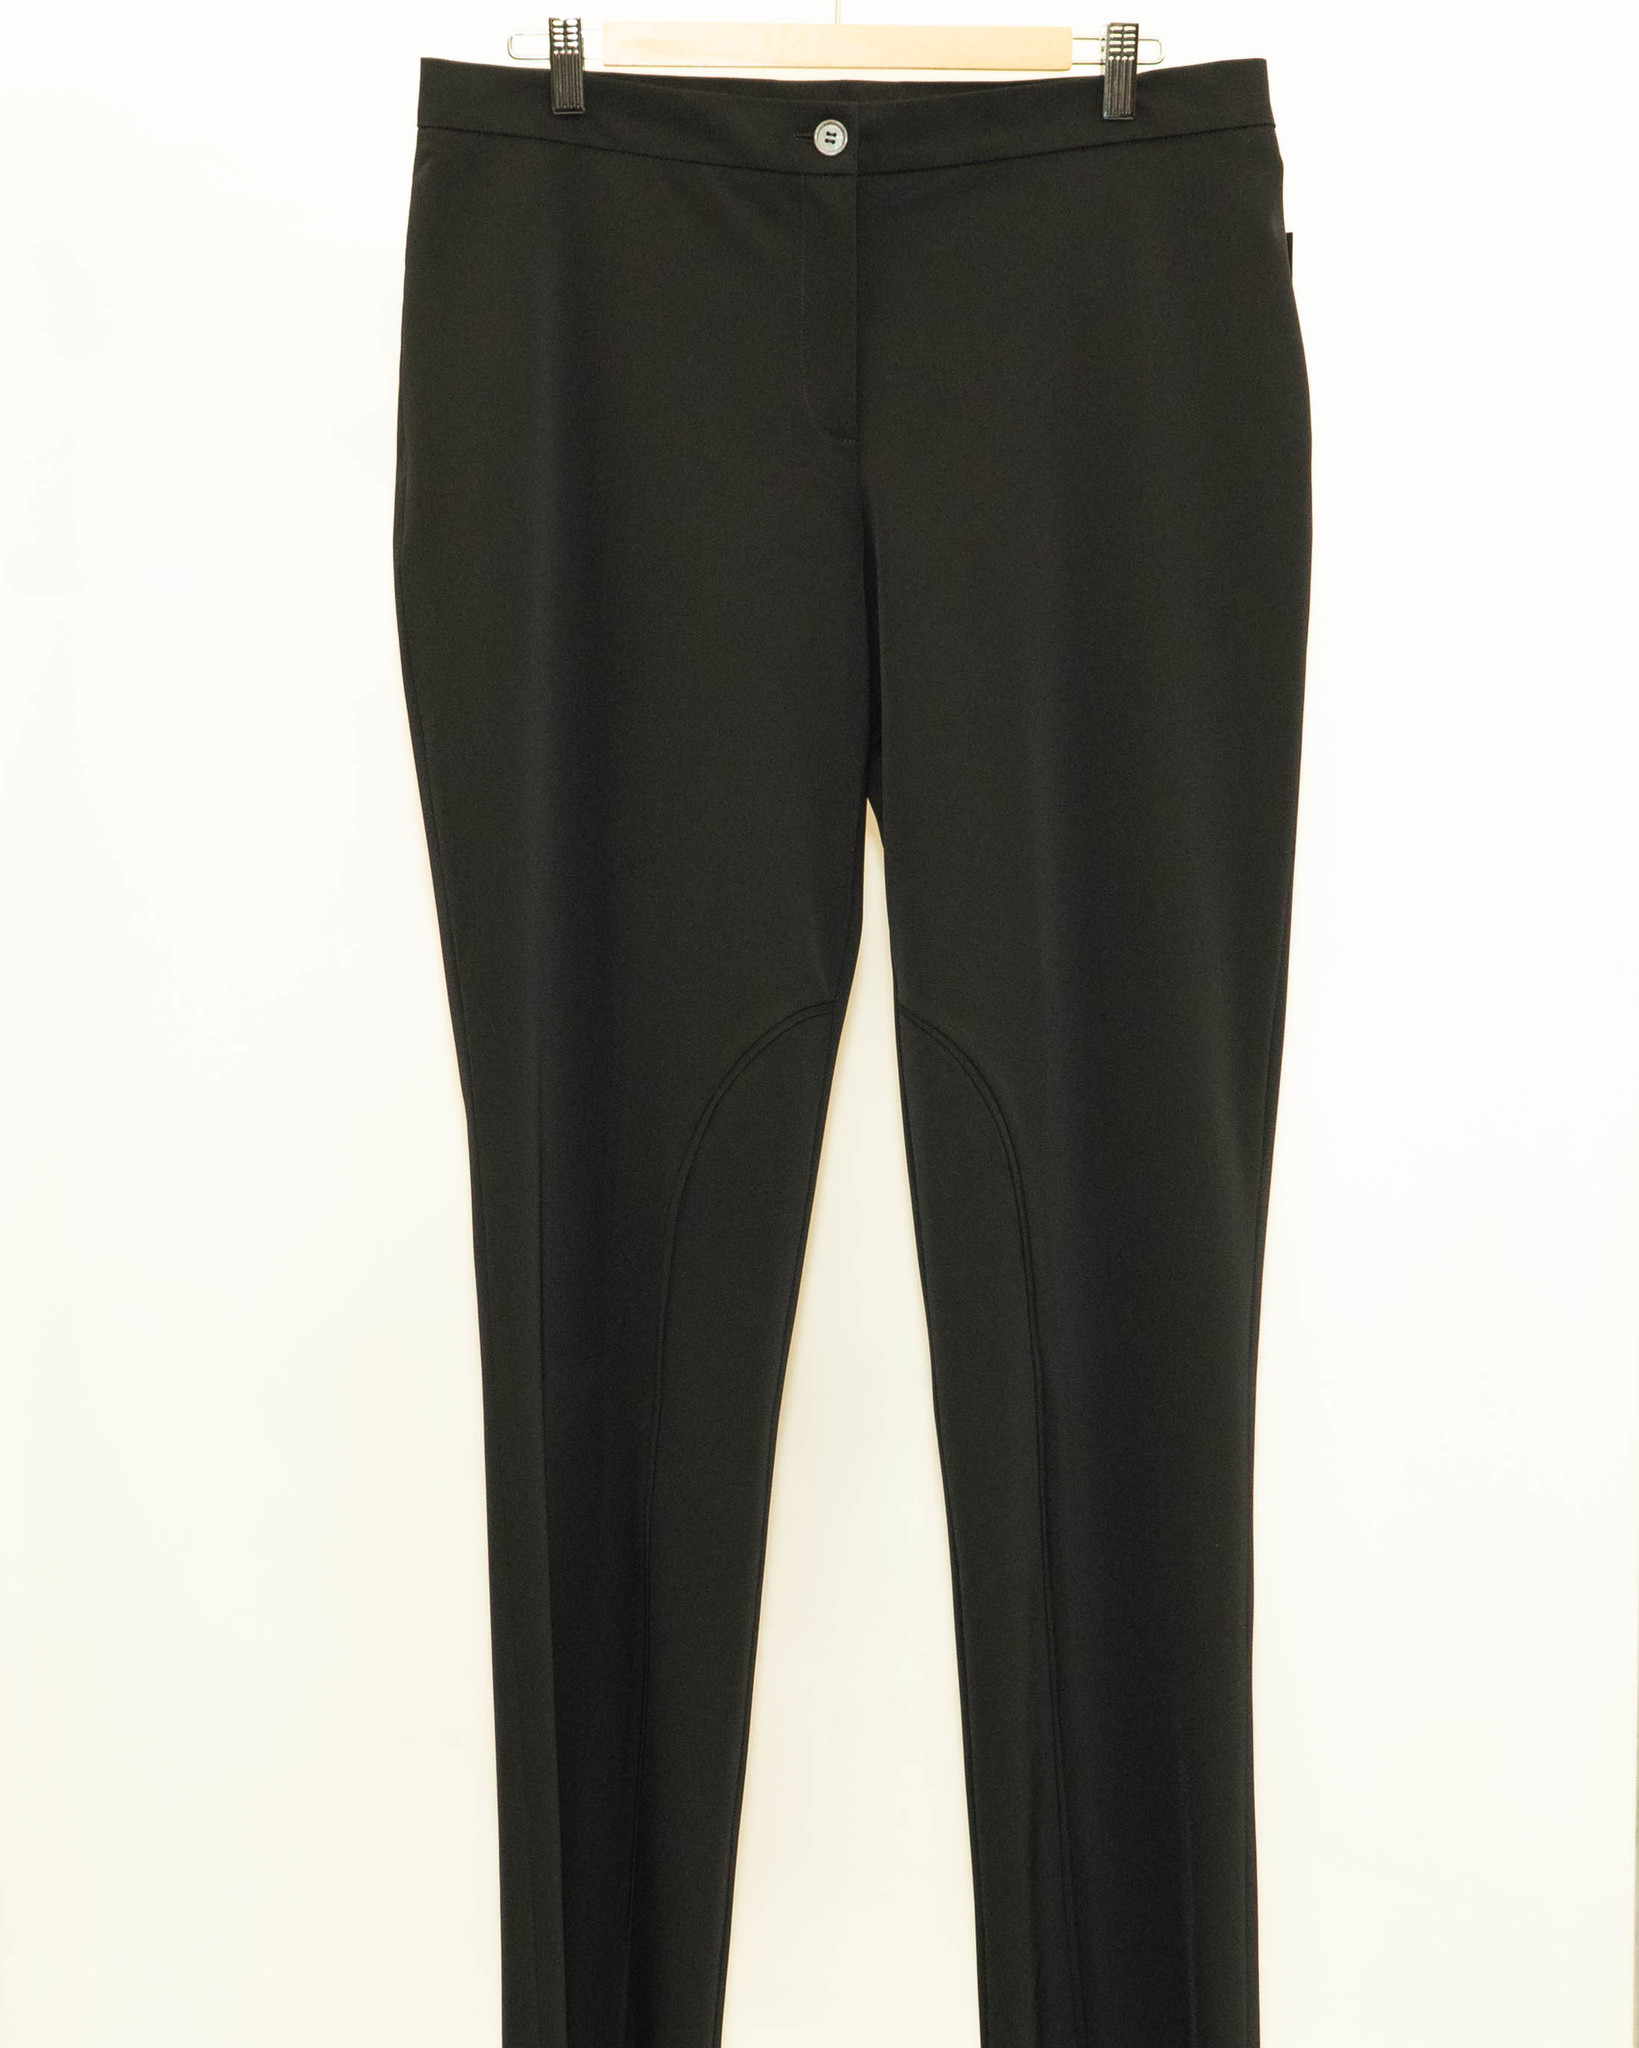 LIZA Trousers in Polyester-1